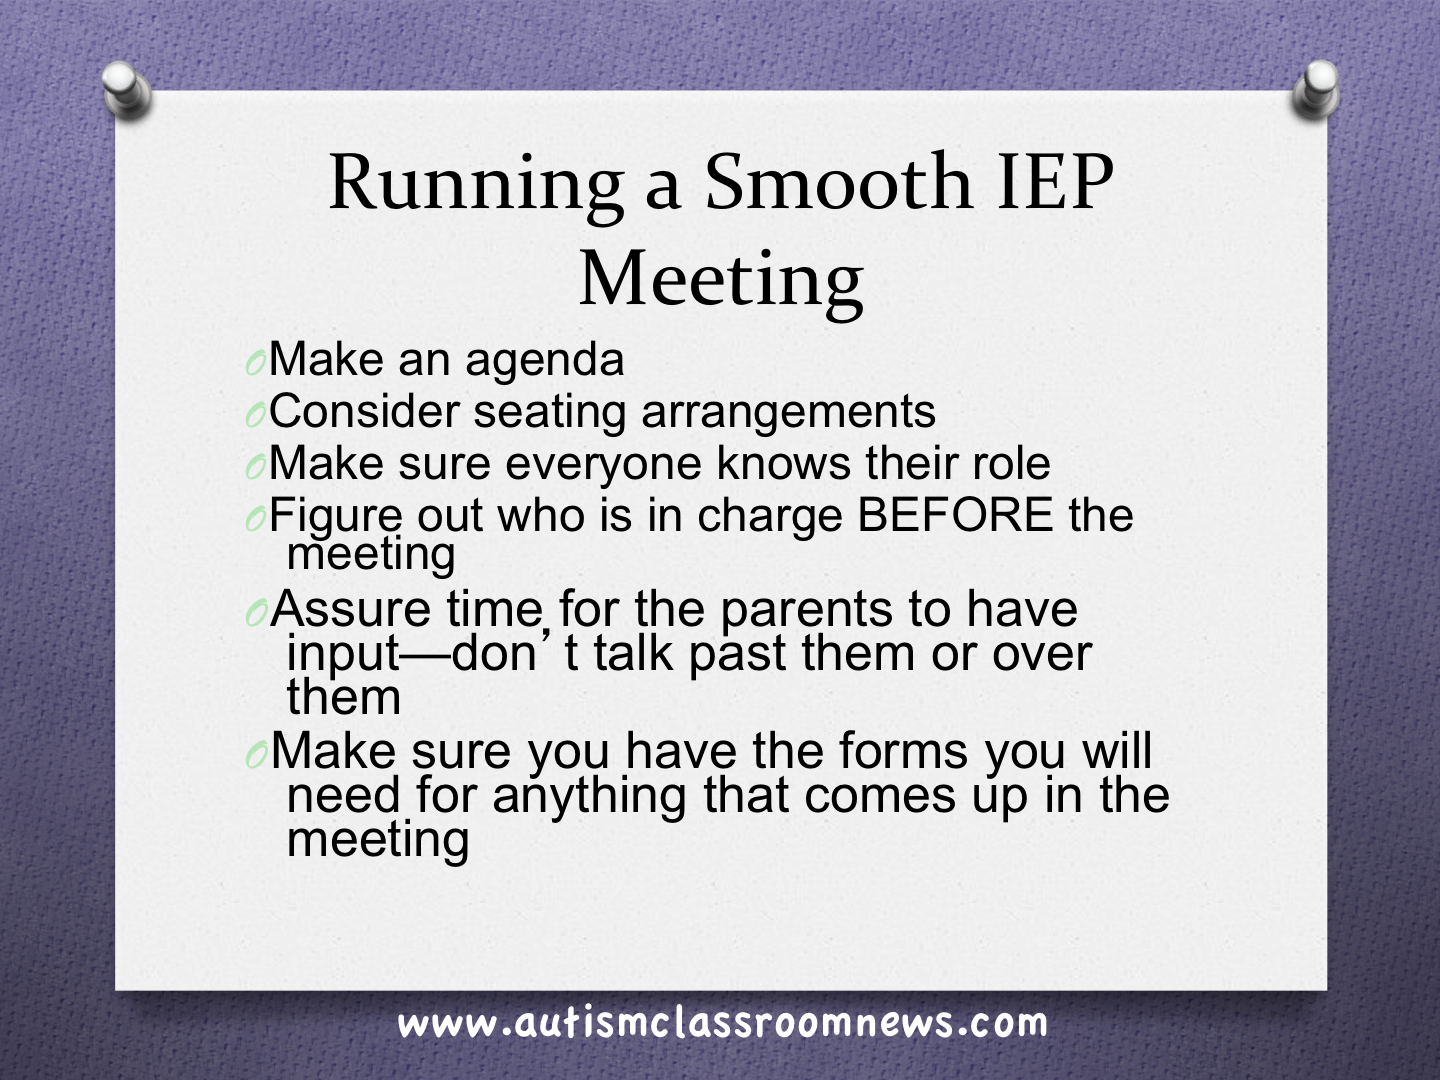 Running a Smooth IEP Meeting: Part 1 - Autism Classroom Resources